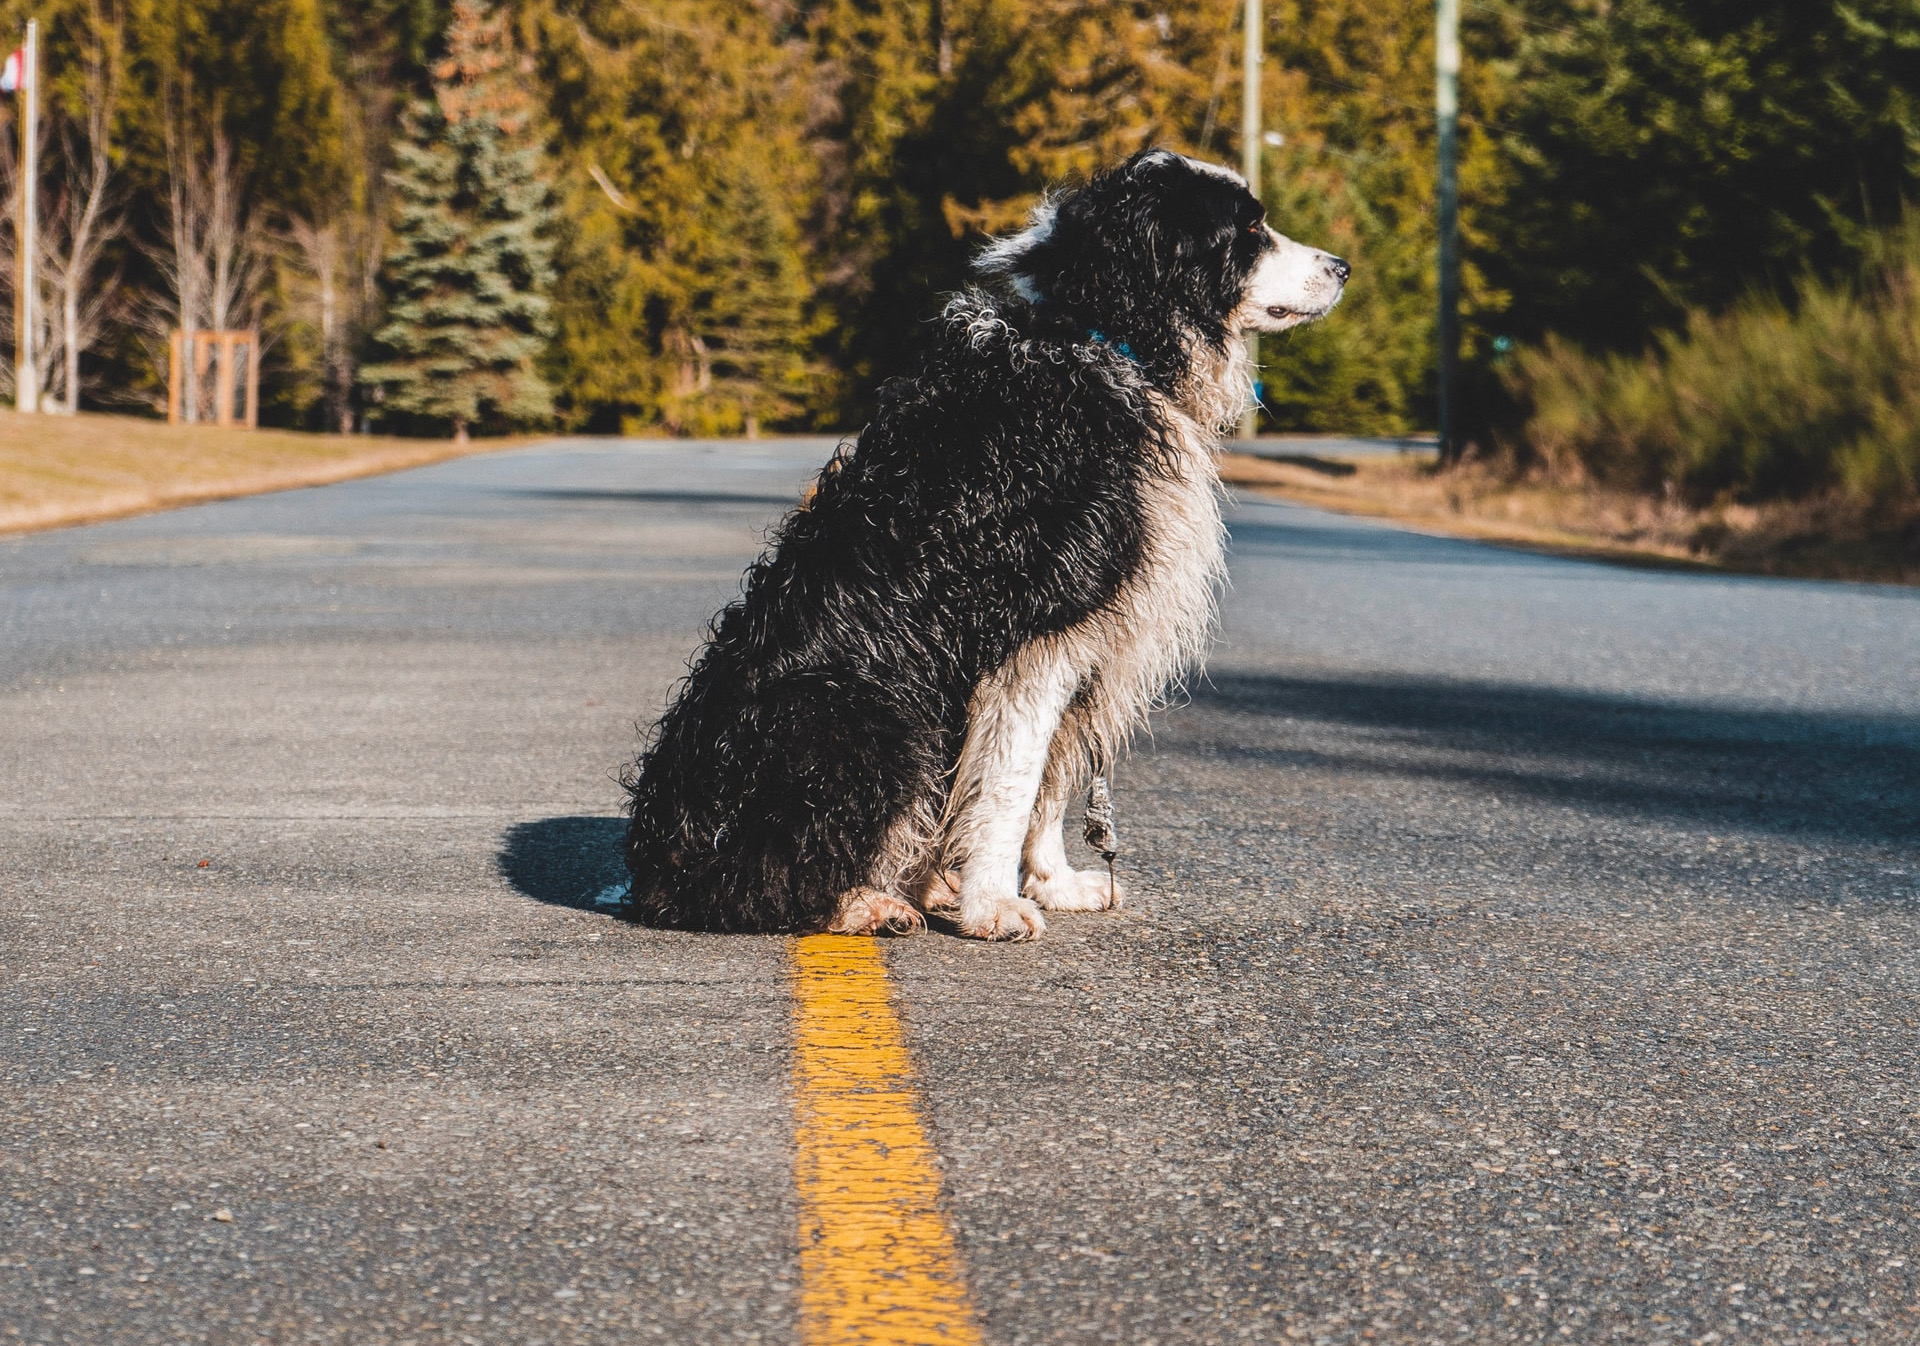 dog sitting in middle of a road, example of leading lines used in photography